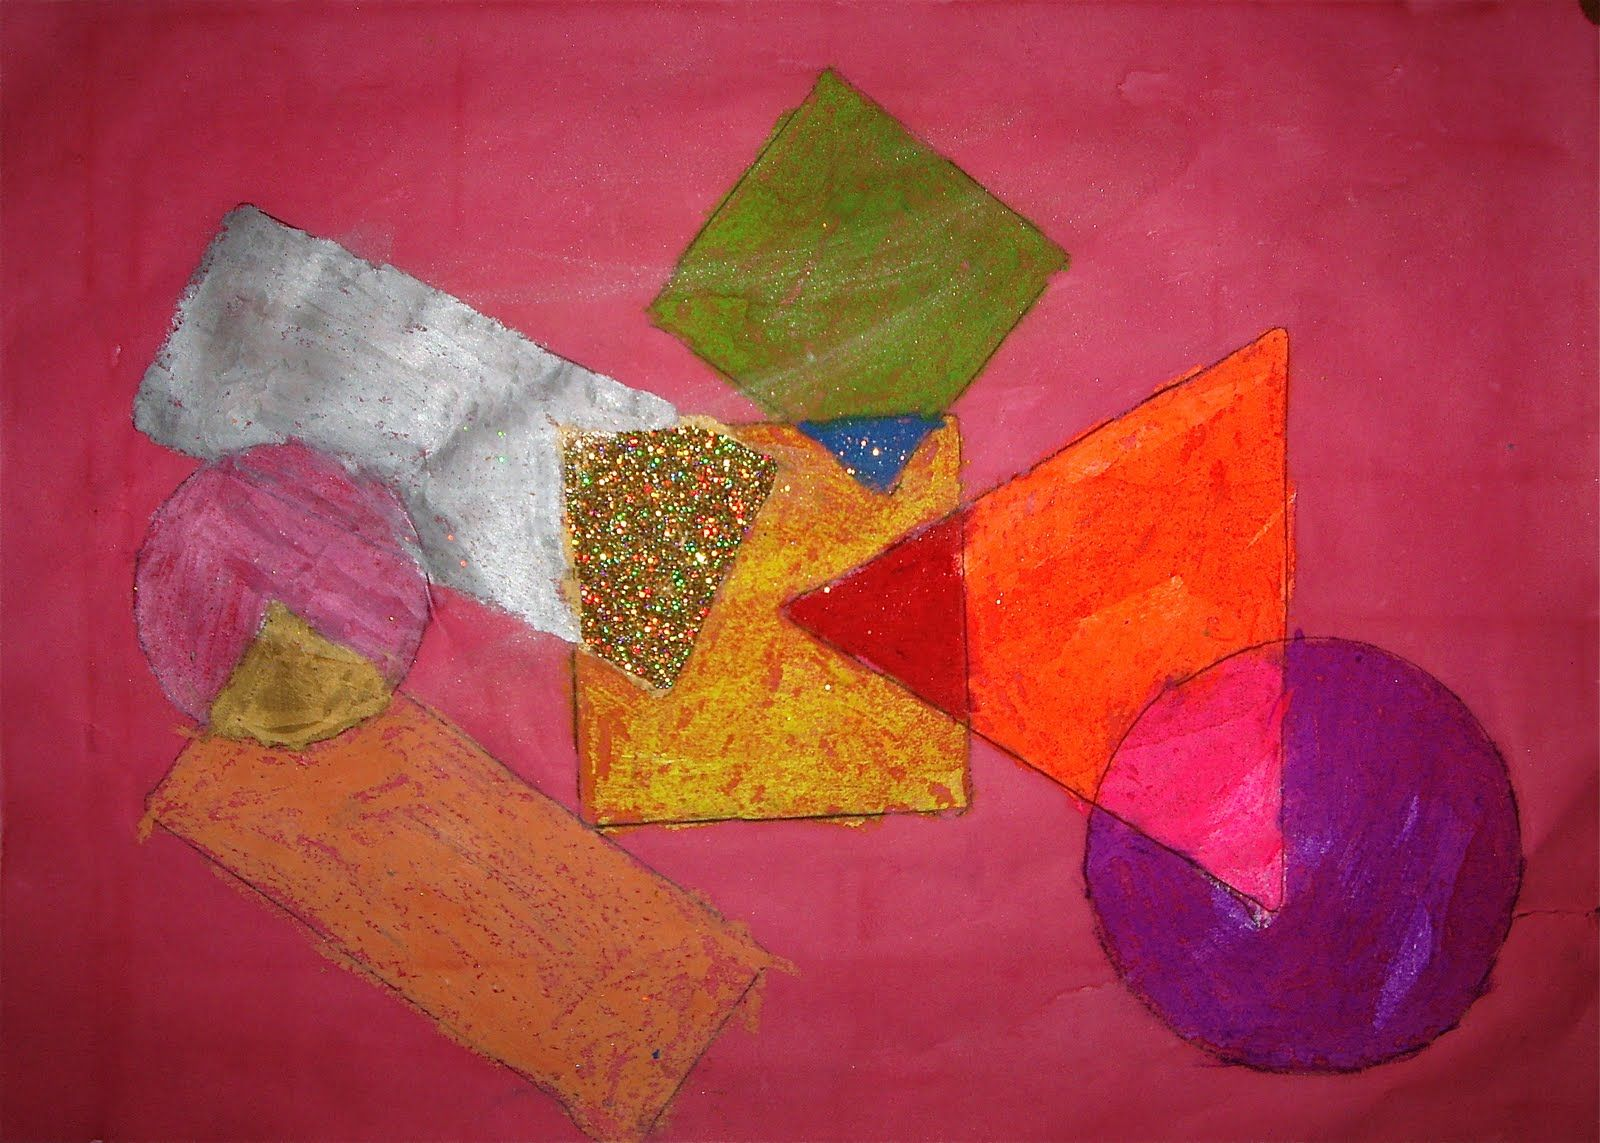 Abstract Art Geometric Shapes Drawing